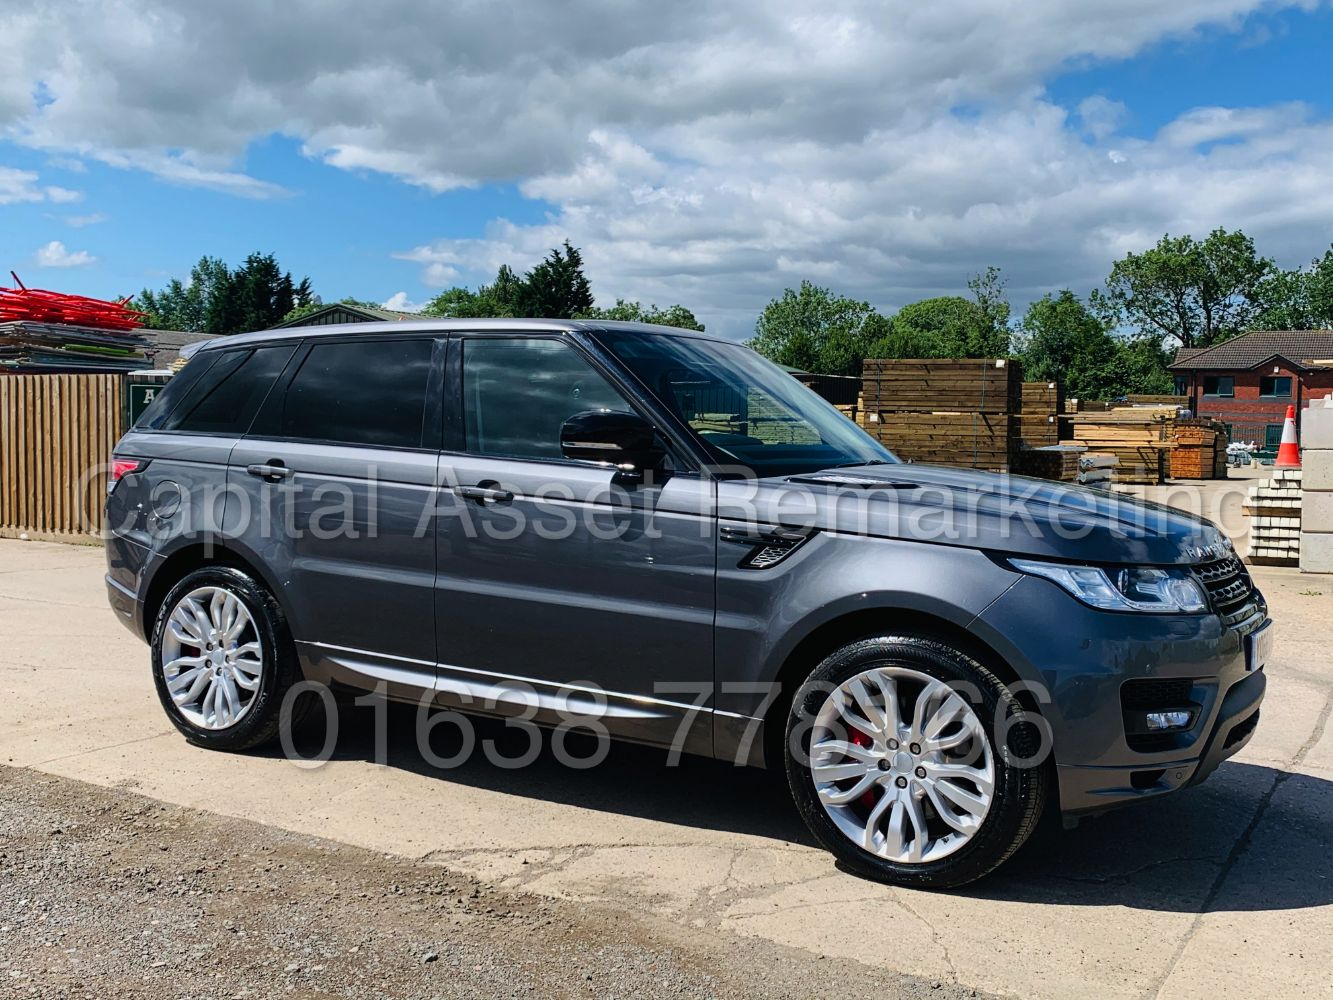 Range Rover Sport *Autobiography Dynamic* 4.4 SDV8 - 2018 Range Rover Evoque - 2018 Ford Transit *Luton* + Many More: Cars, Commercials & 4x4's